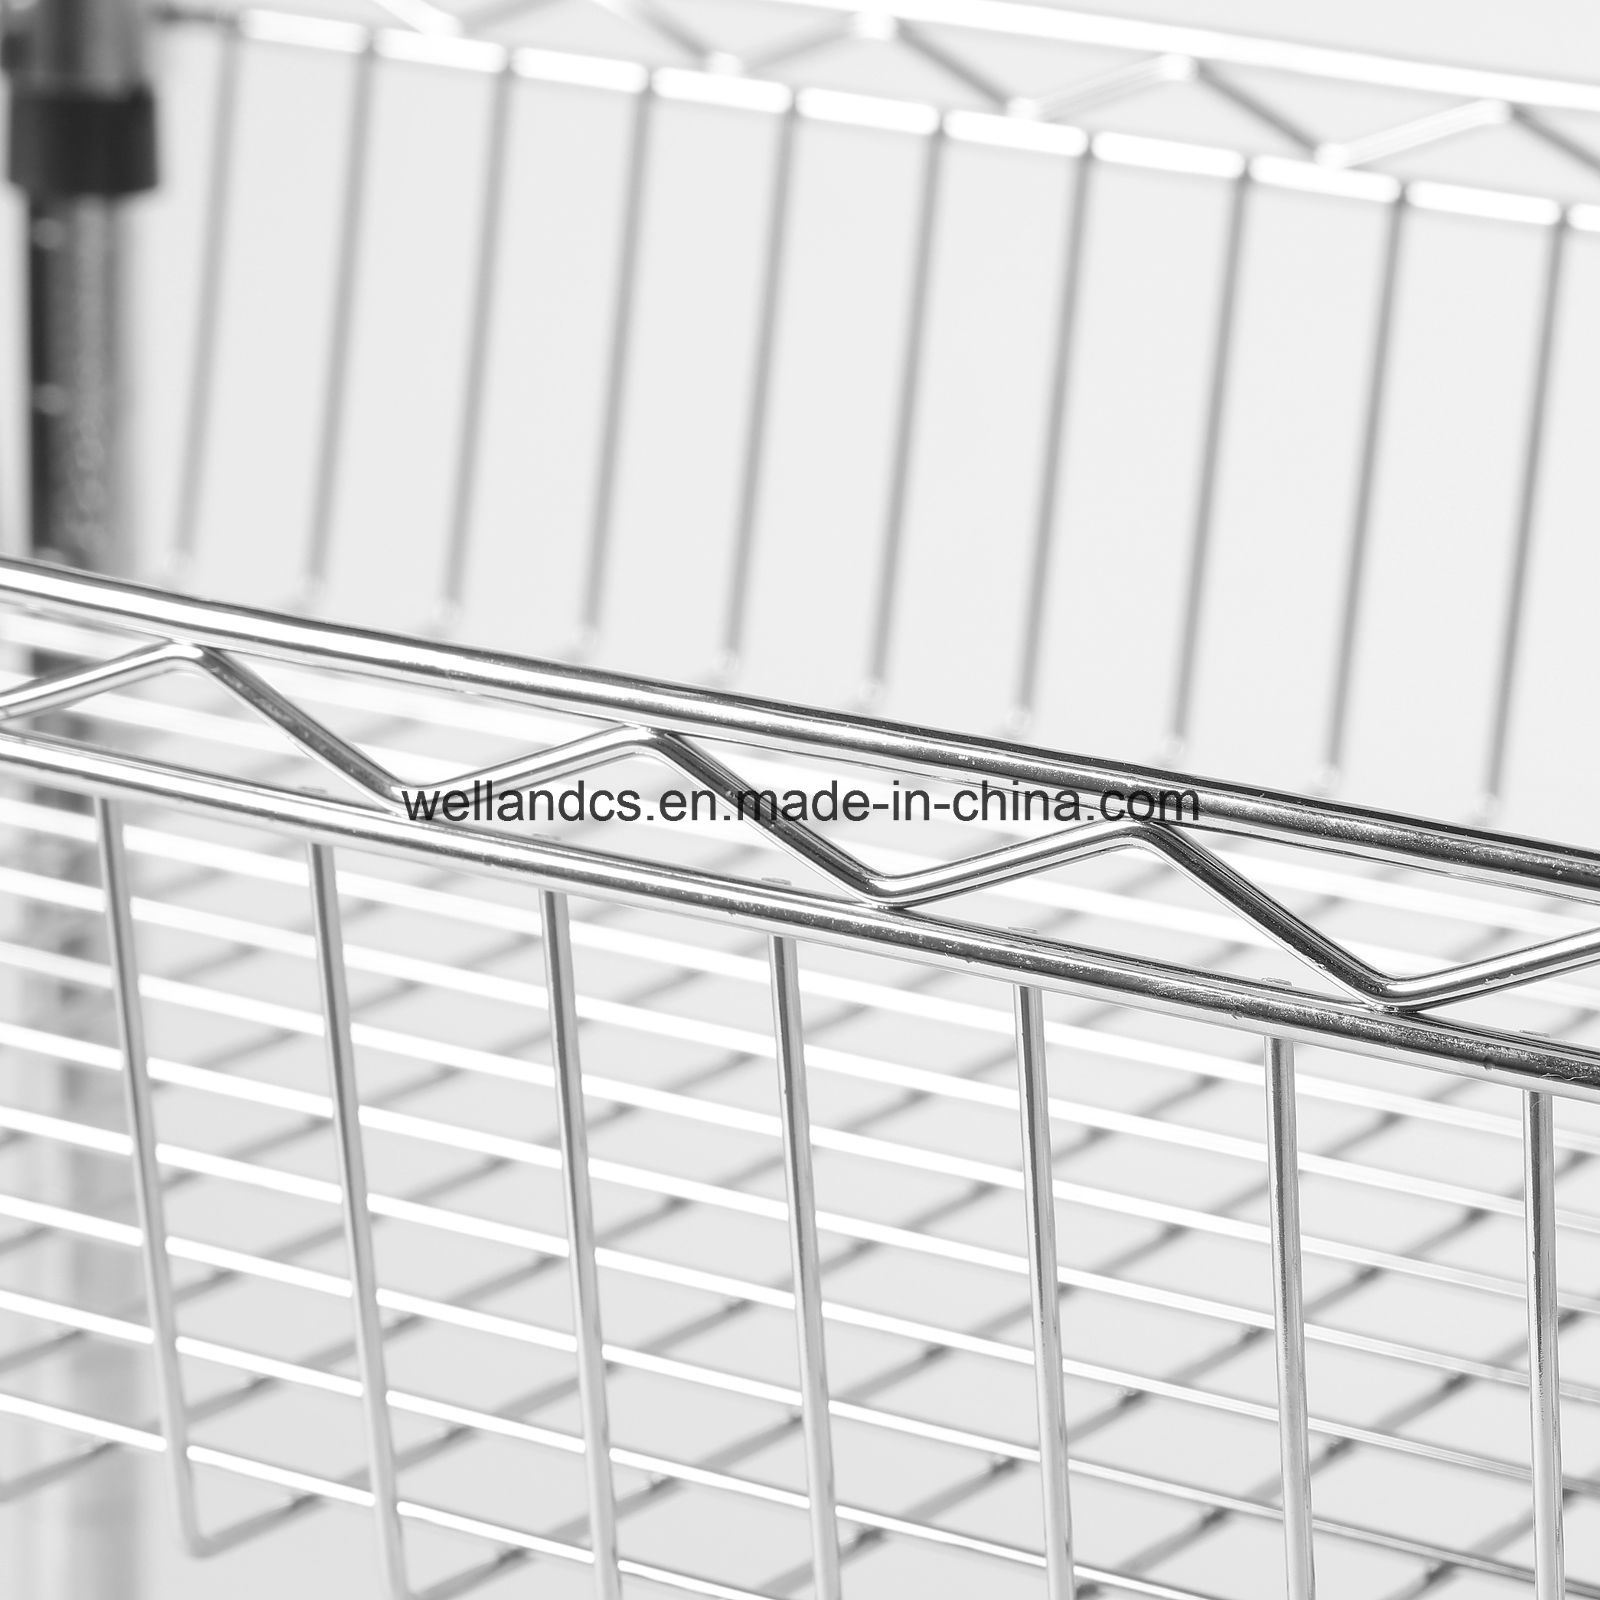 Multi-Function Chrome Wire Kitchen Trolley Basket Rack with Nylon Wheels